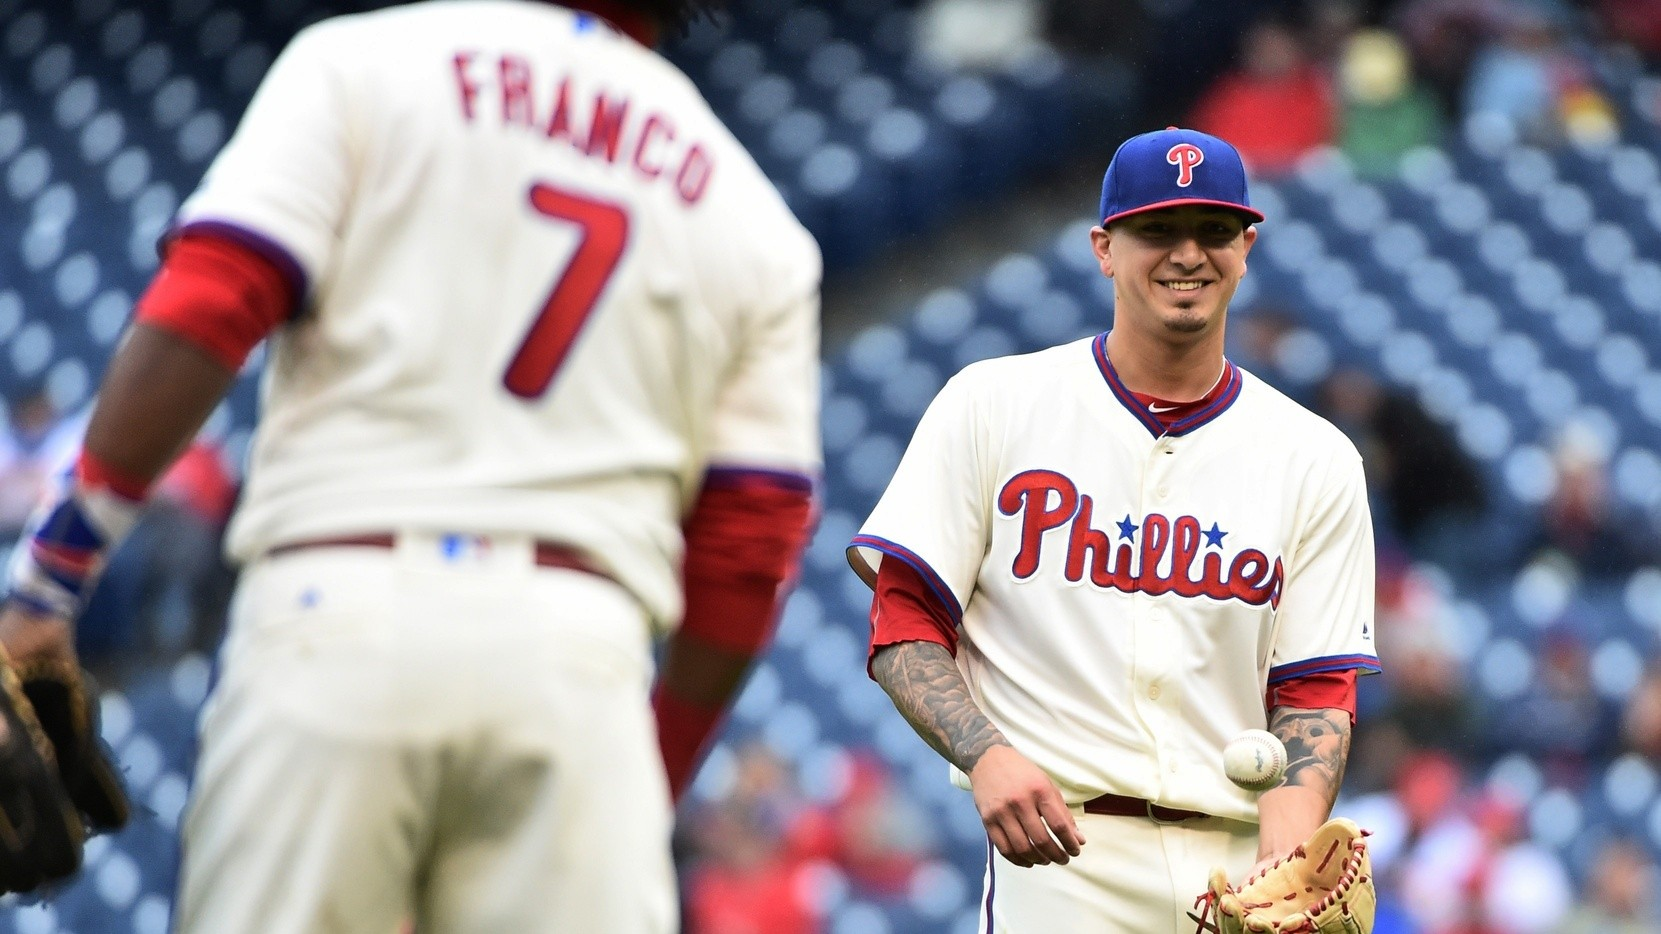 Phillies Good, Yankees Bad, Up Is Down: This Particular Week In Baseball